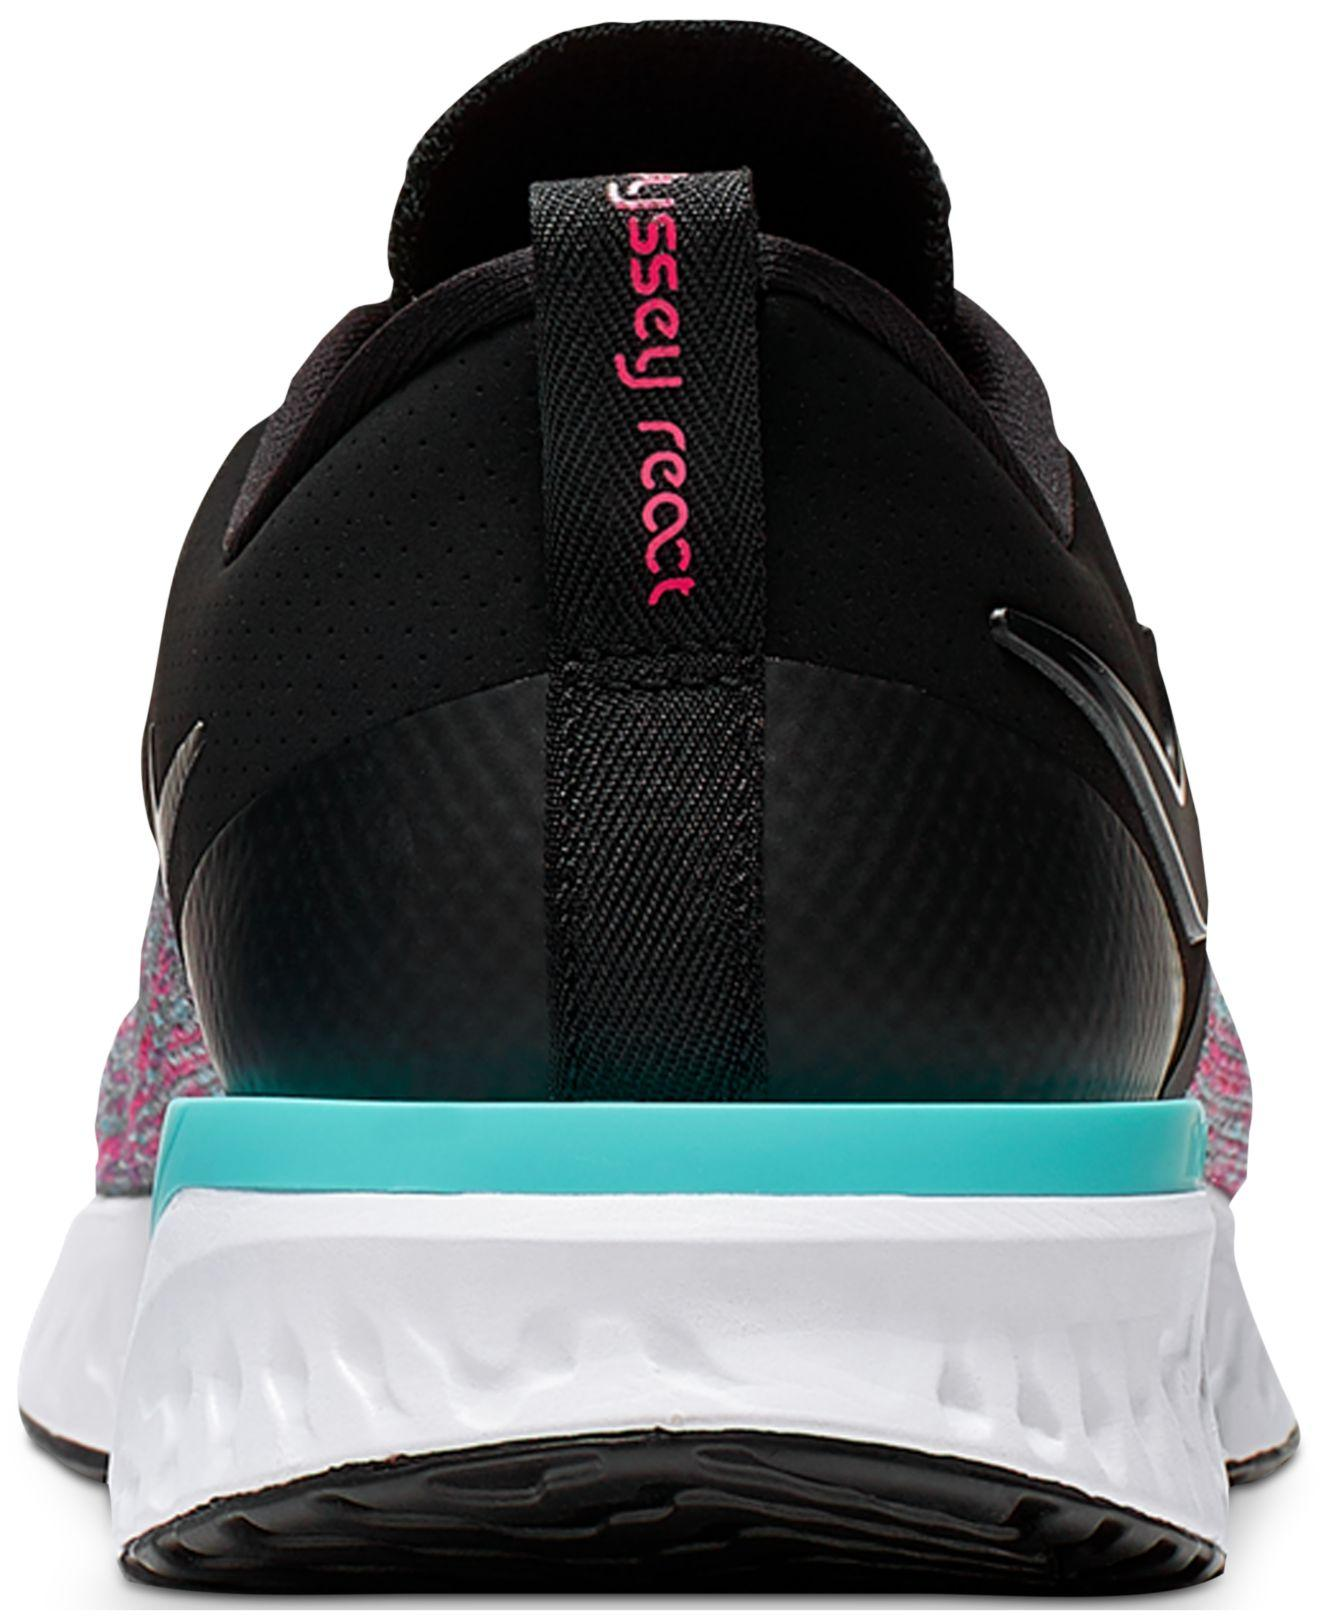 06332b306d45 Lyst - Nike Odyssey React Flyknit 2 Running Sneakers From Finish Line in  Black